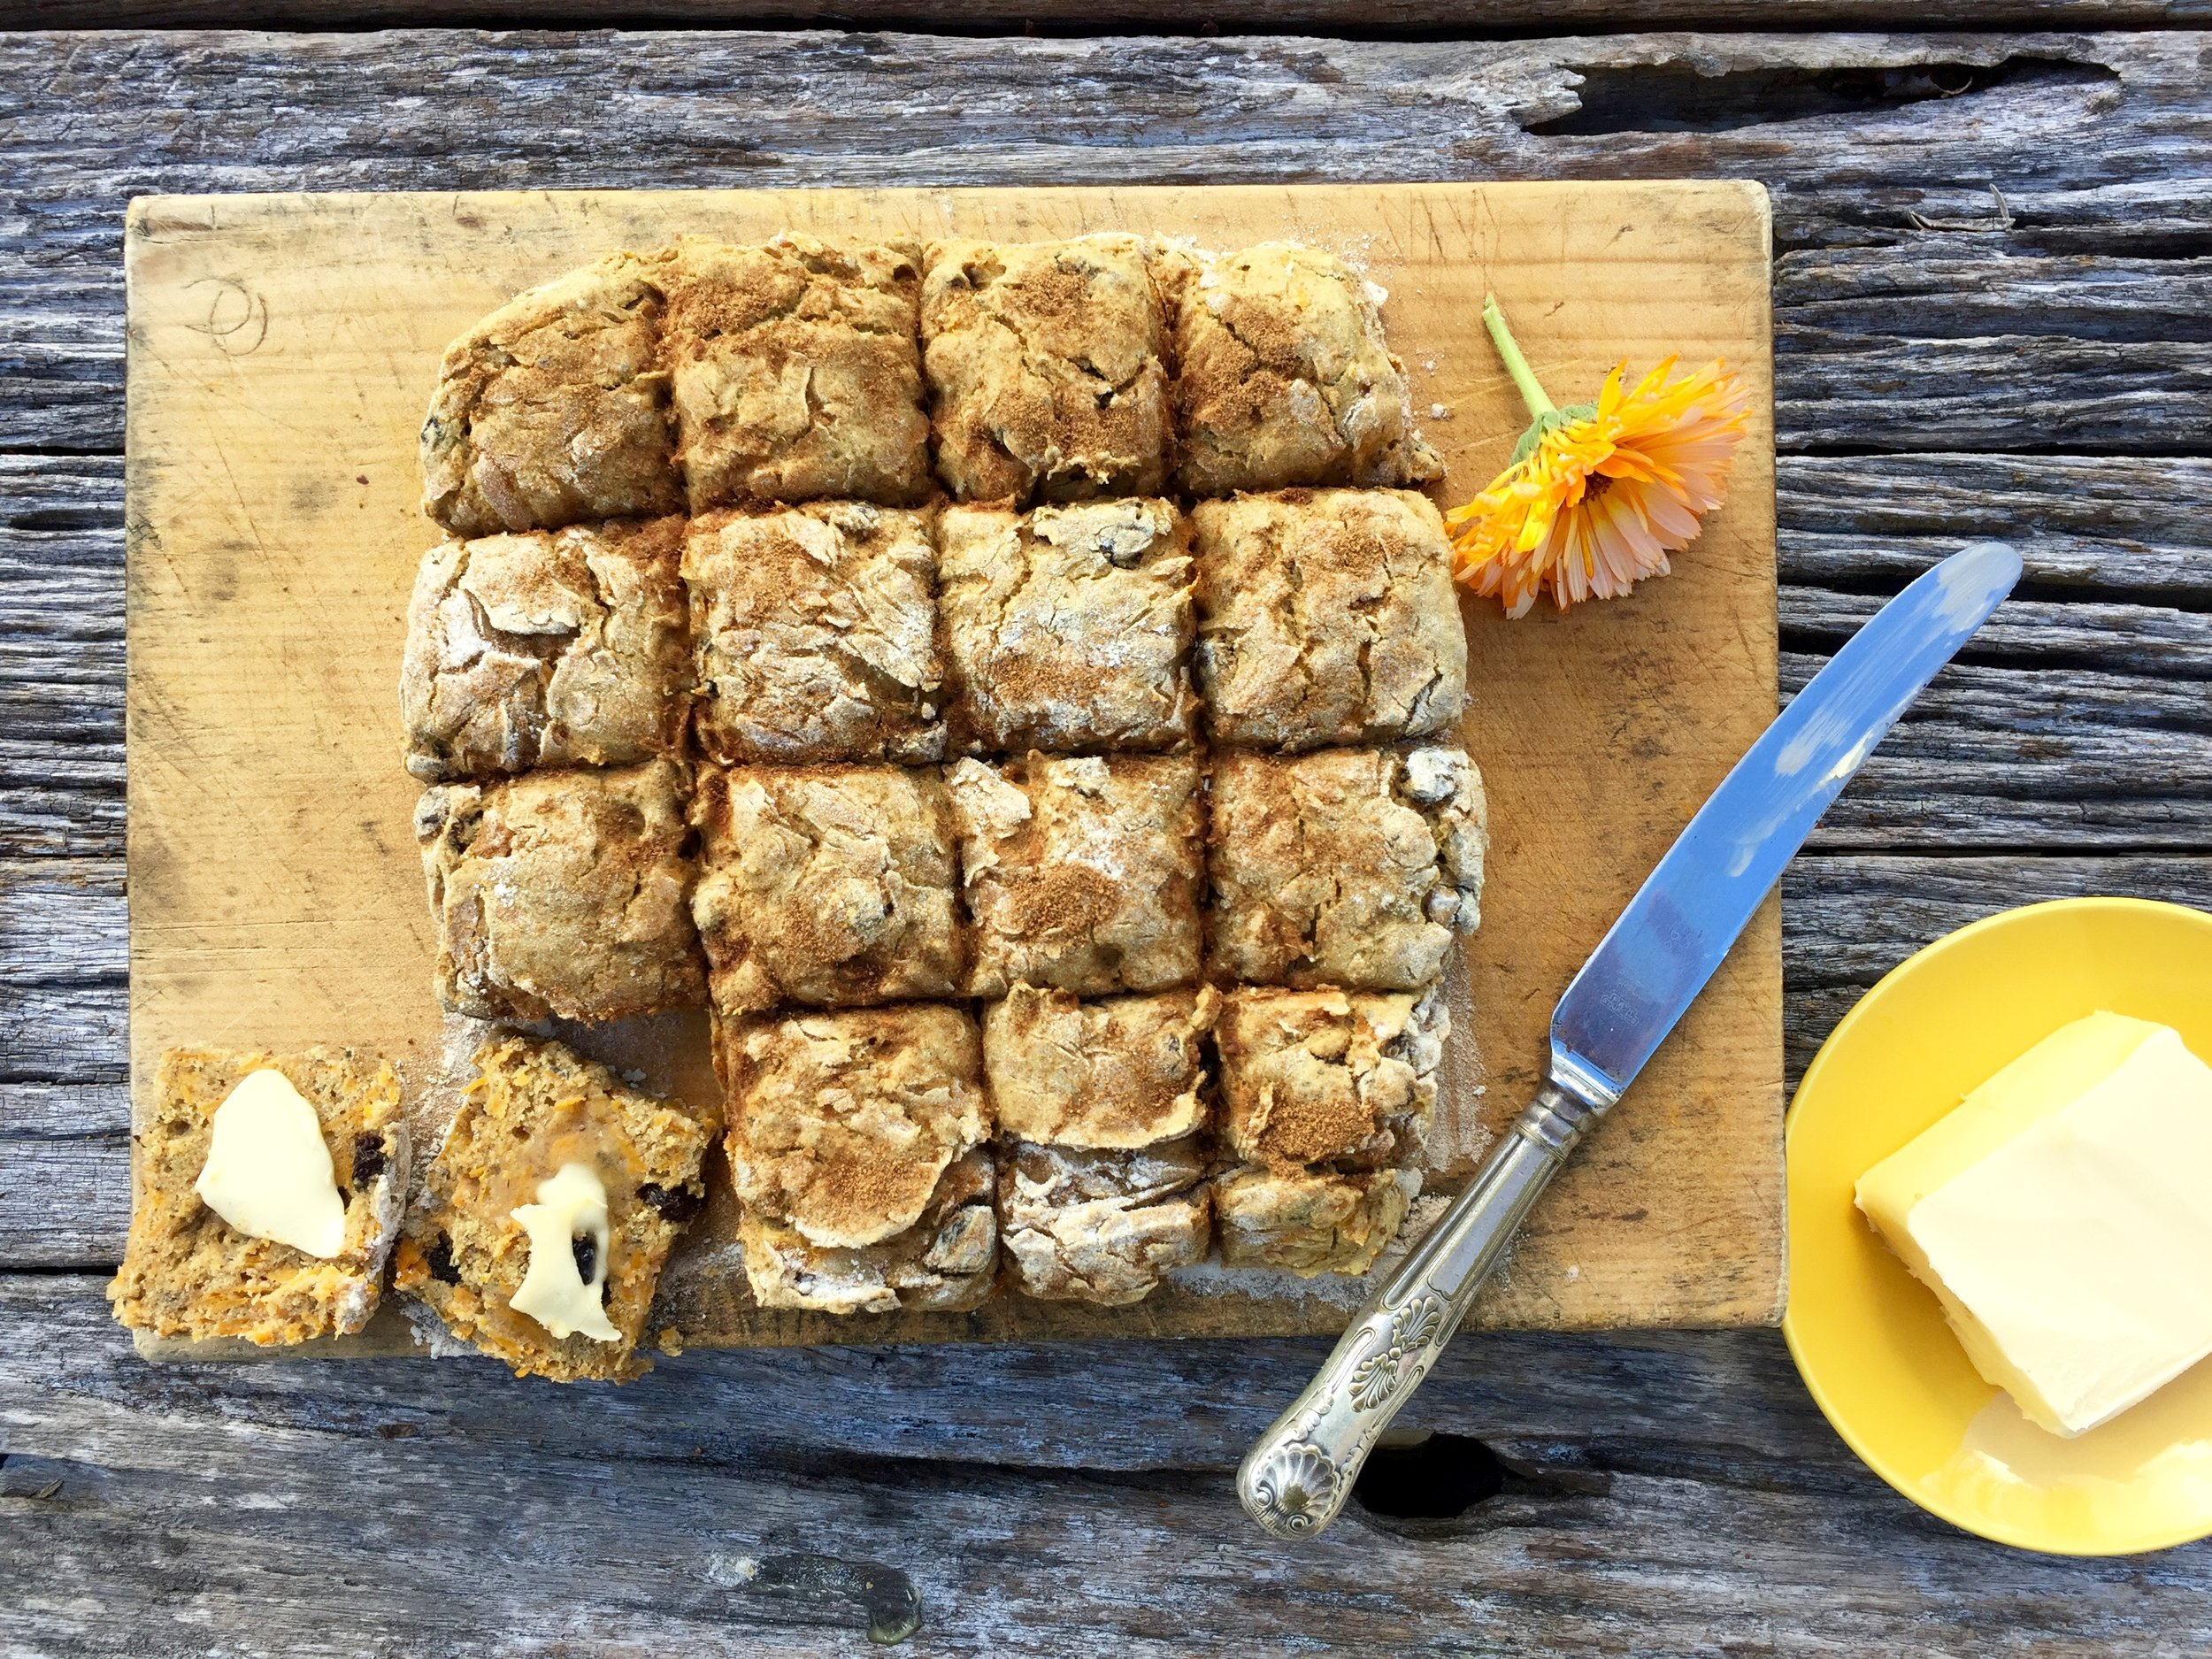 Pumpkin and Buckwheat Scones with Cinnamon and Raisins